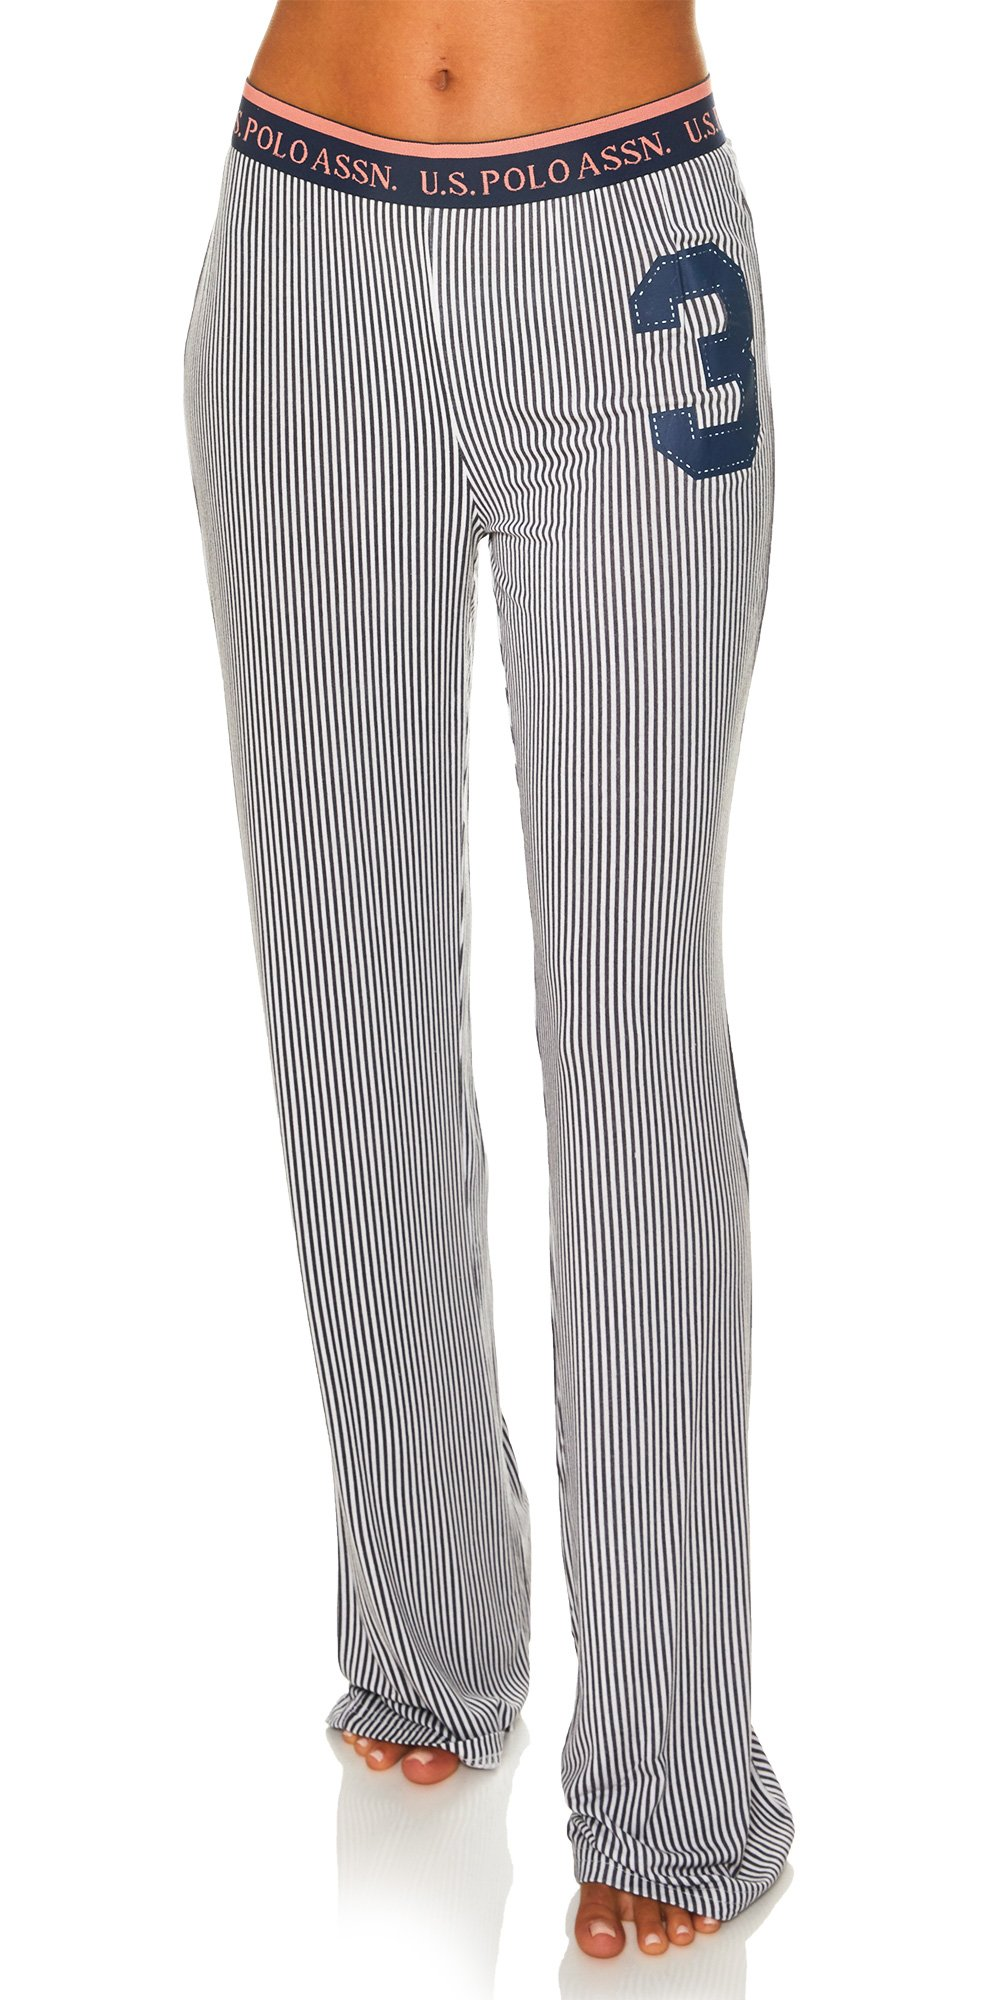 US Polo Assn. Womens Casual Lounge/Sleepwear Patterned Long Pajama Pant Charcoal Medium